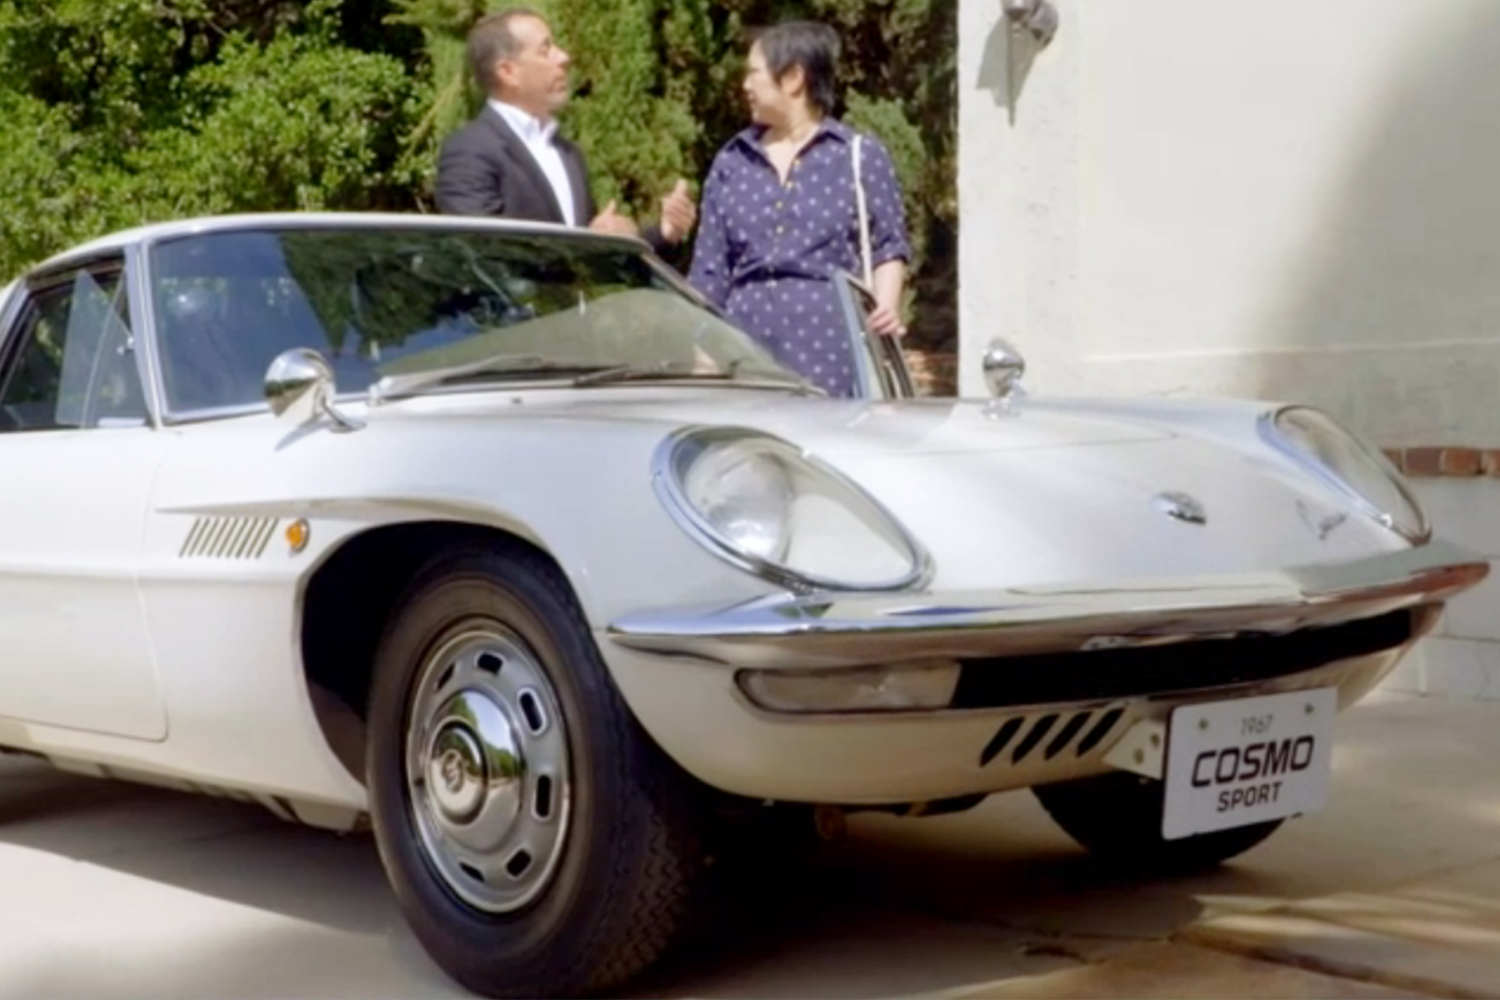 Comedians in Cars Getting Coffee Margaret Cho 1967 Mazda Cosmo Sport